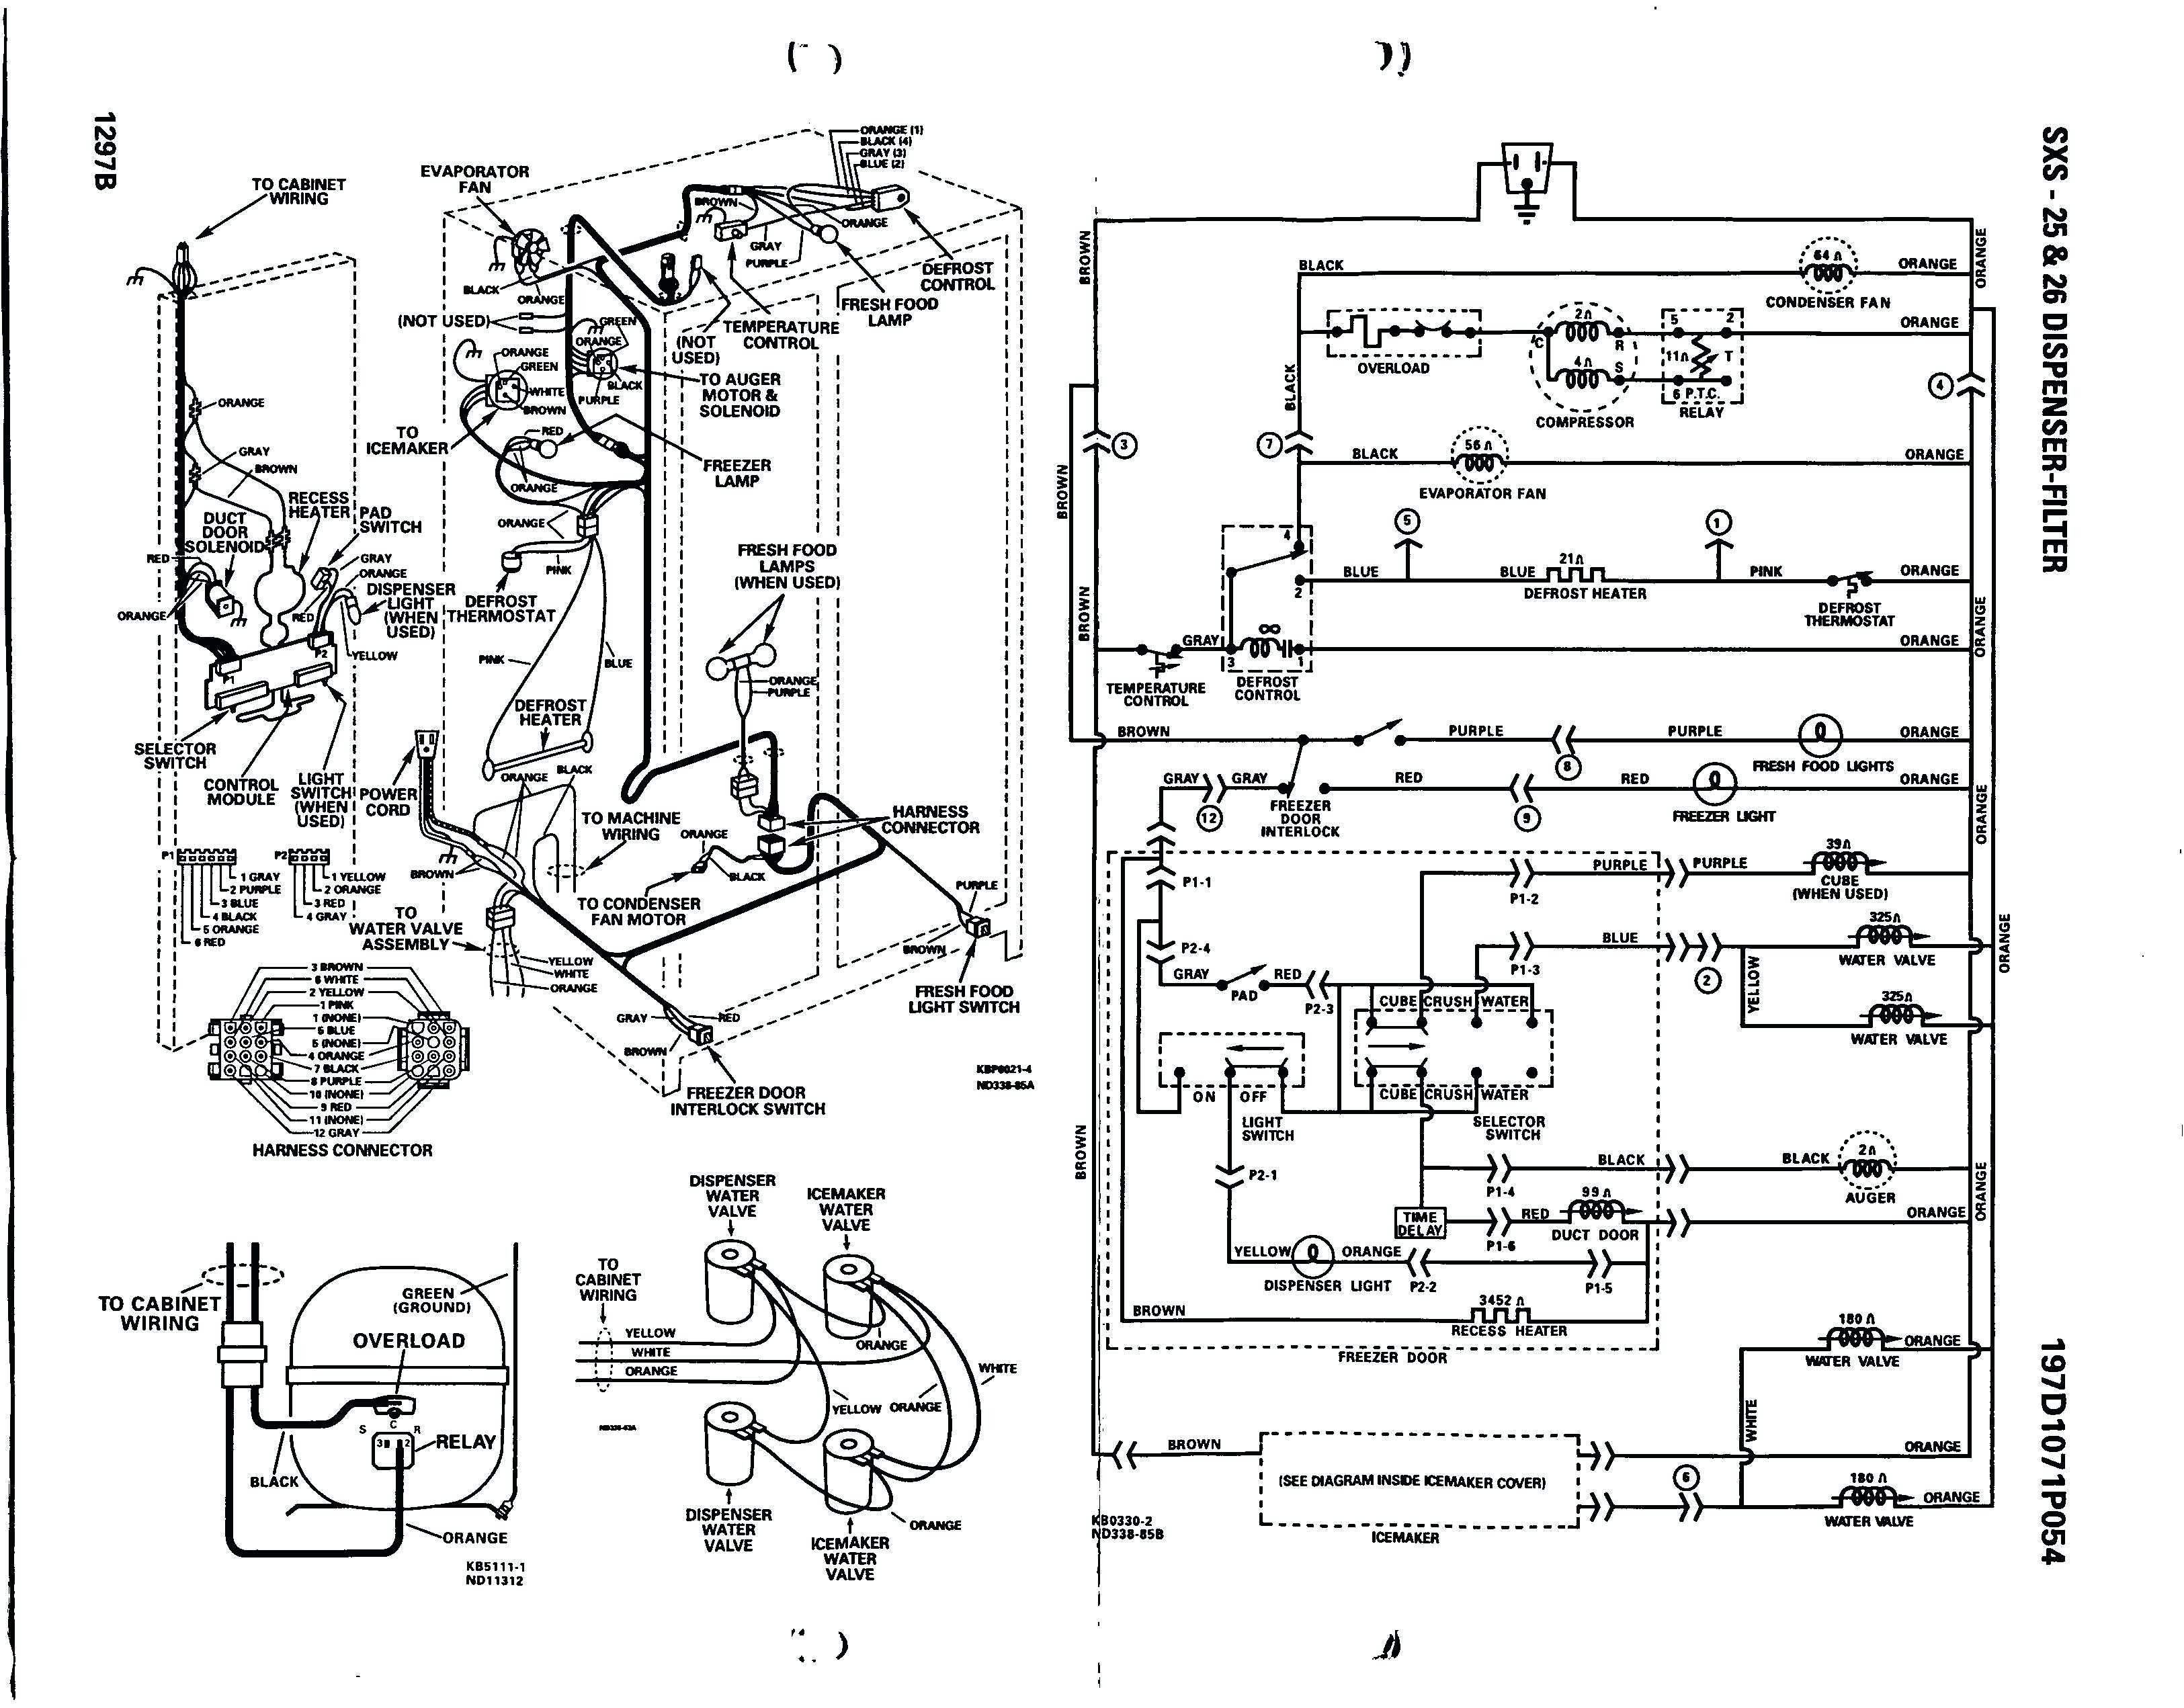 Century electric motor wiring diagram unique wiring diagram image full size of electrical wiring century ac motor 1 phase fan diagram window three electric p asfbconference2016 Choice Image